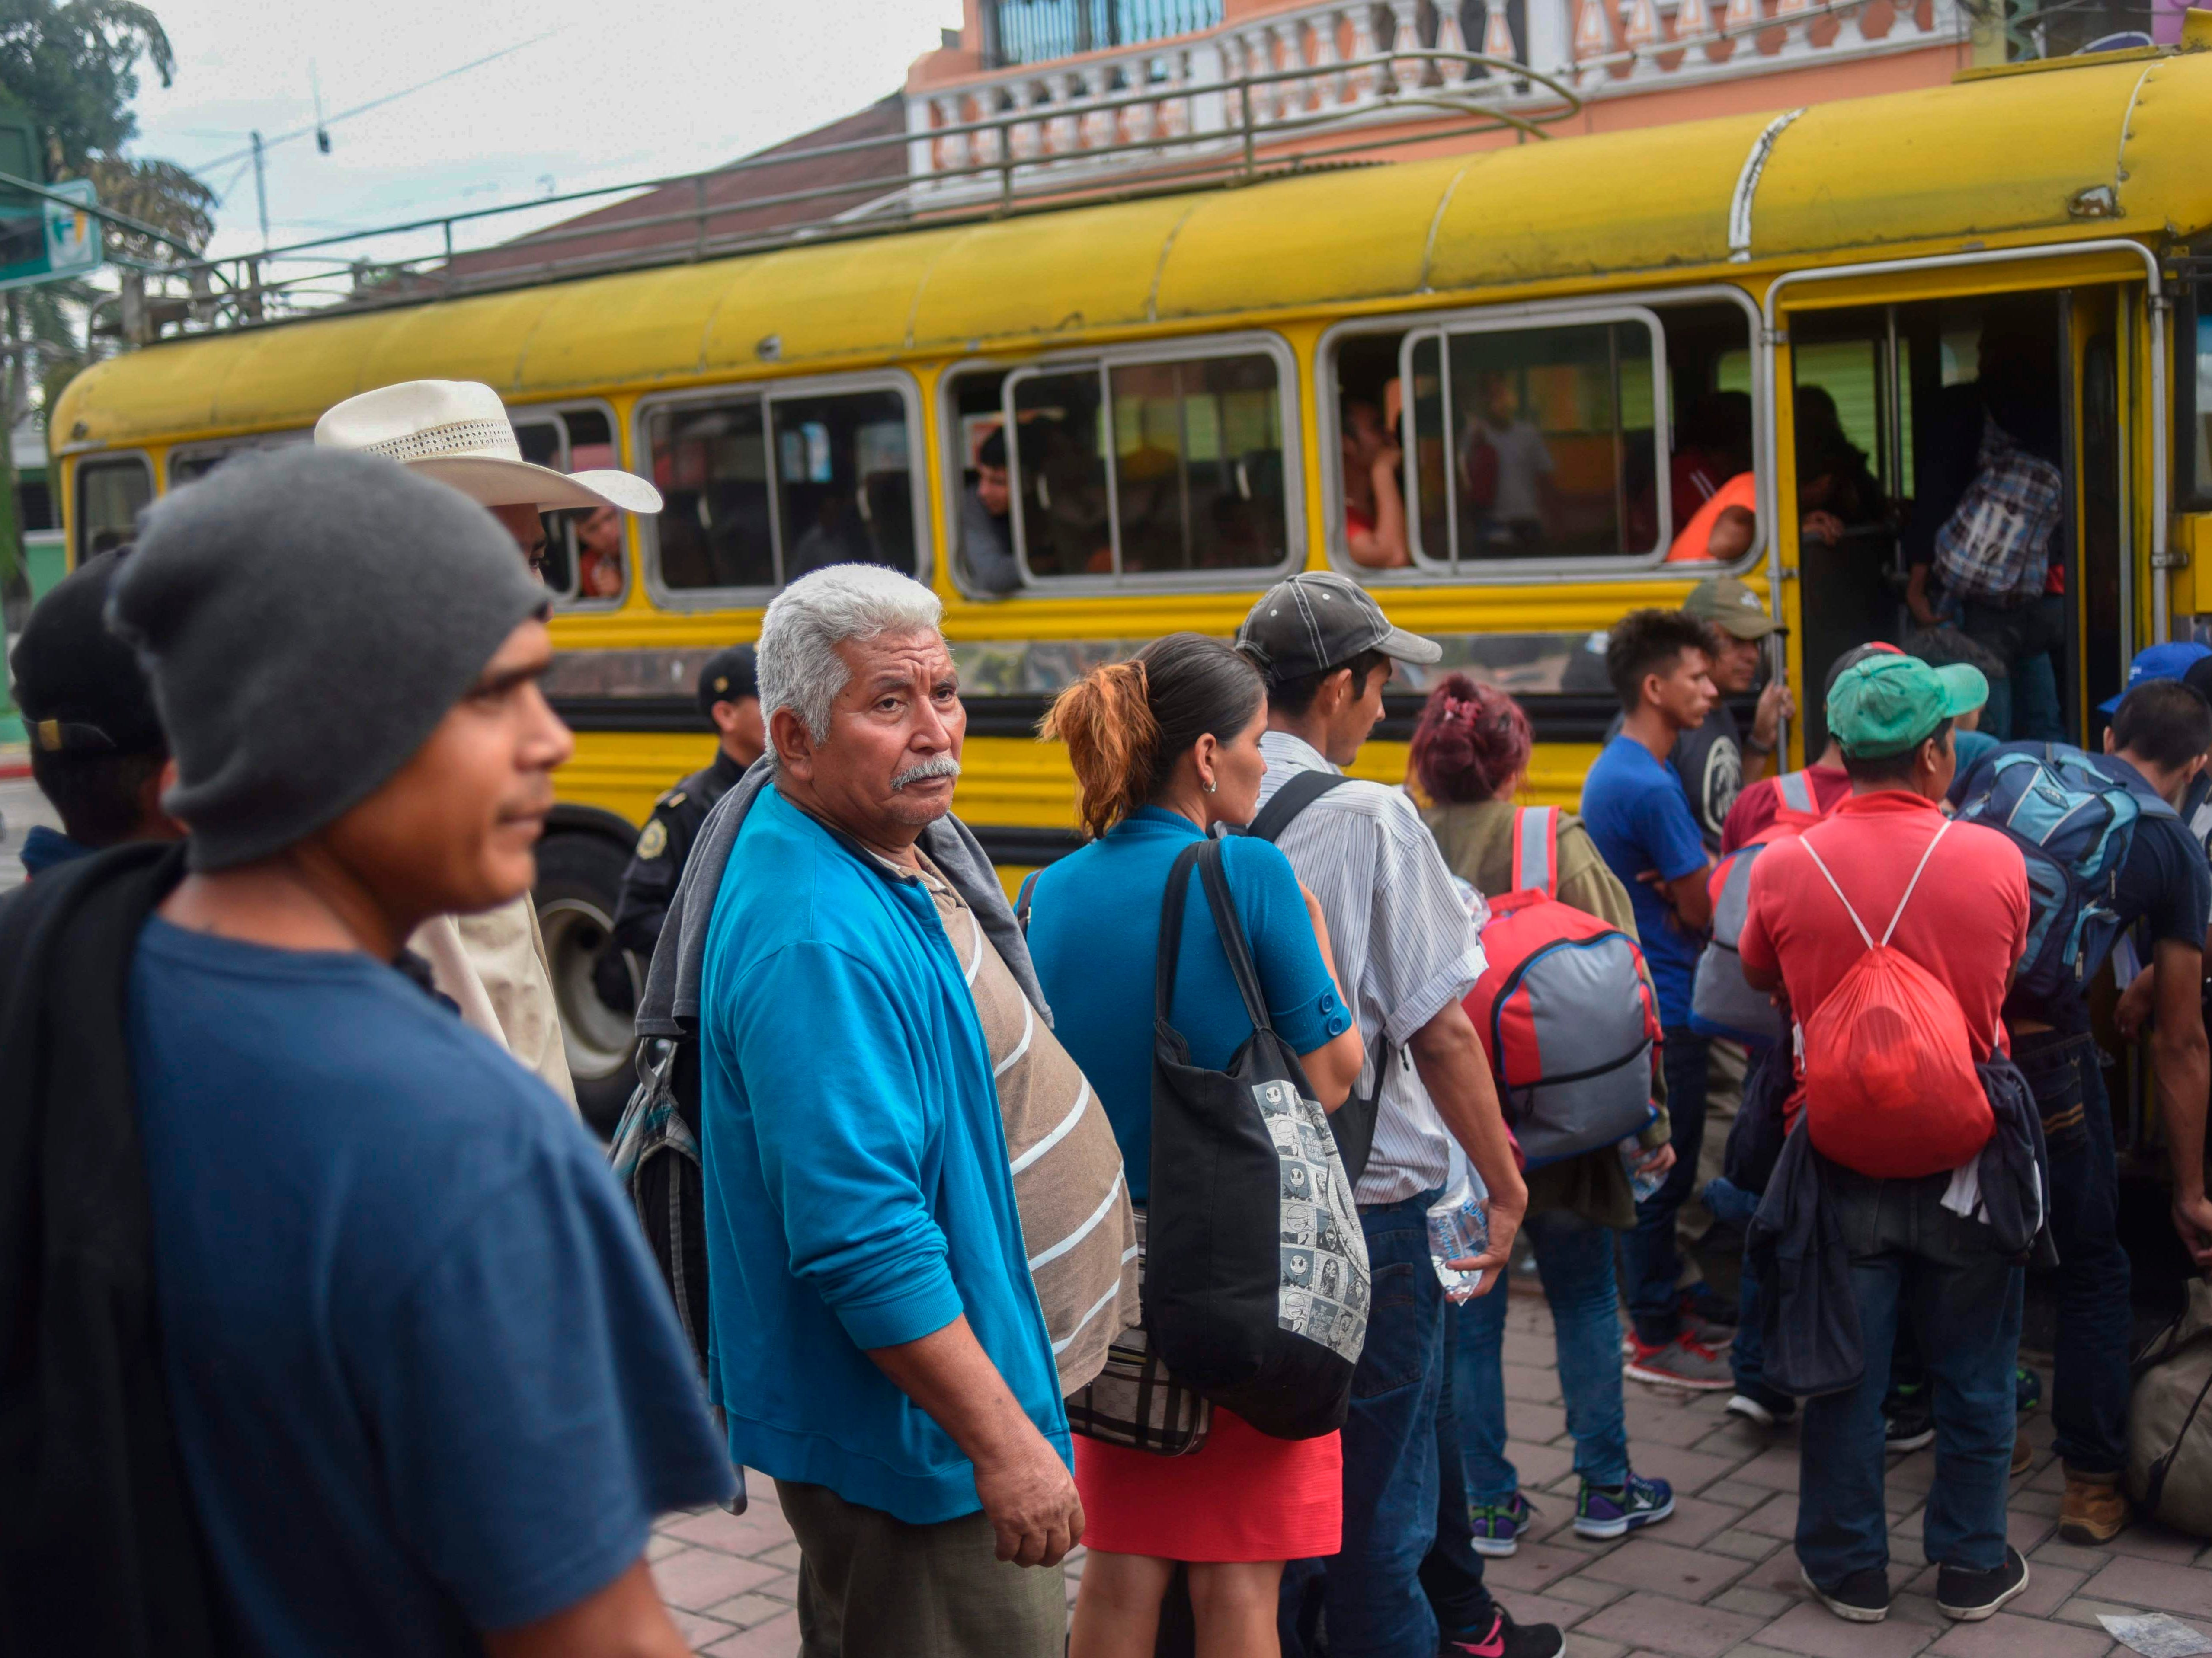 Honduran migrants, who were taking part in a caravan heading to the US, board a bus to return to Honduras, in Ciudad Tecun Uman, Guatemala, on Oct. 20, 2018. Some 220 Honduran migrants were returning to their country and some 130 were waiting at a shelter Saturday, according to a police source, while thousands who forced their way through Guatemala's northwestern border and flooded onto a bridge leading to Mexico, were waiting at the border in the hope of continuing their journey.